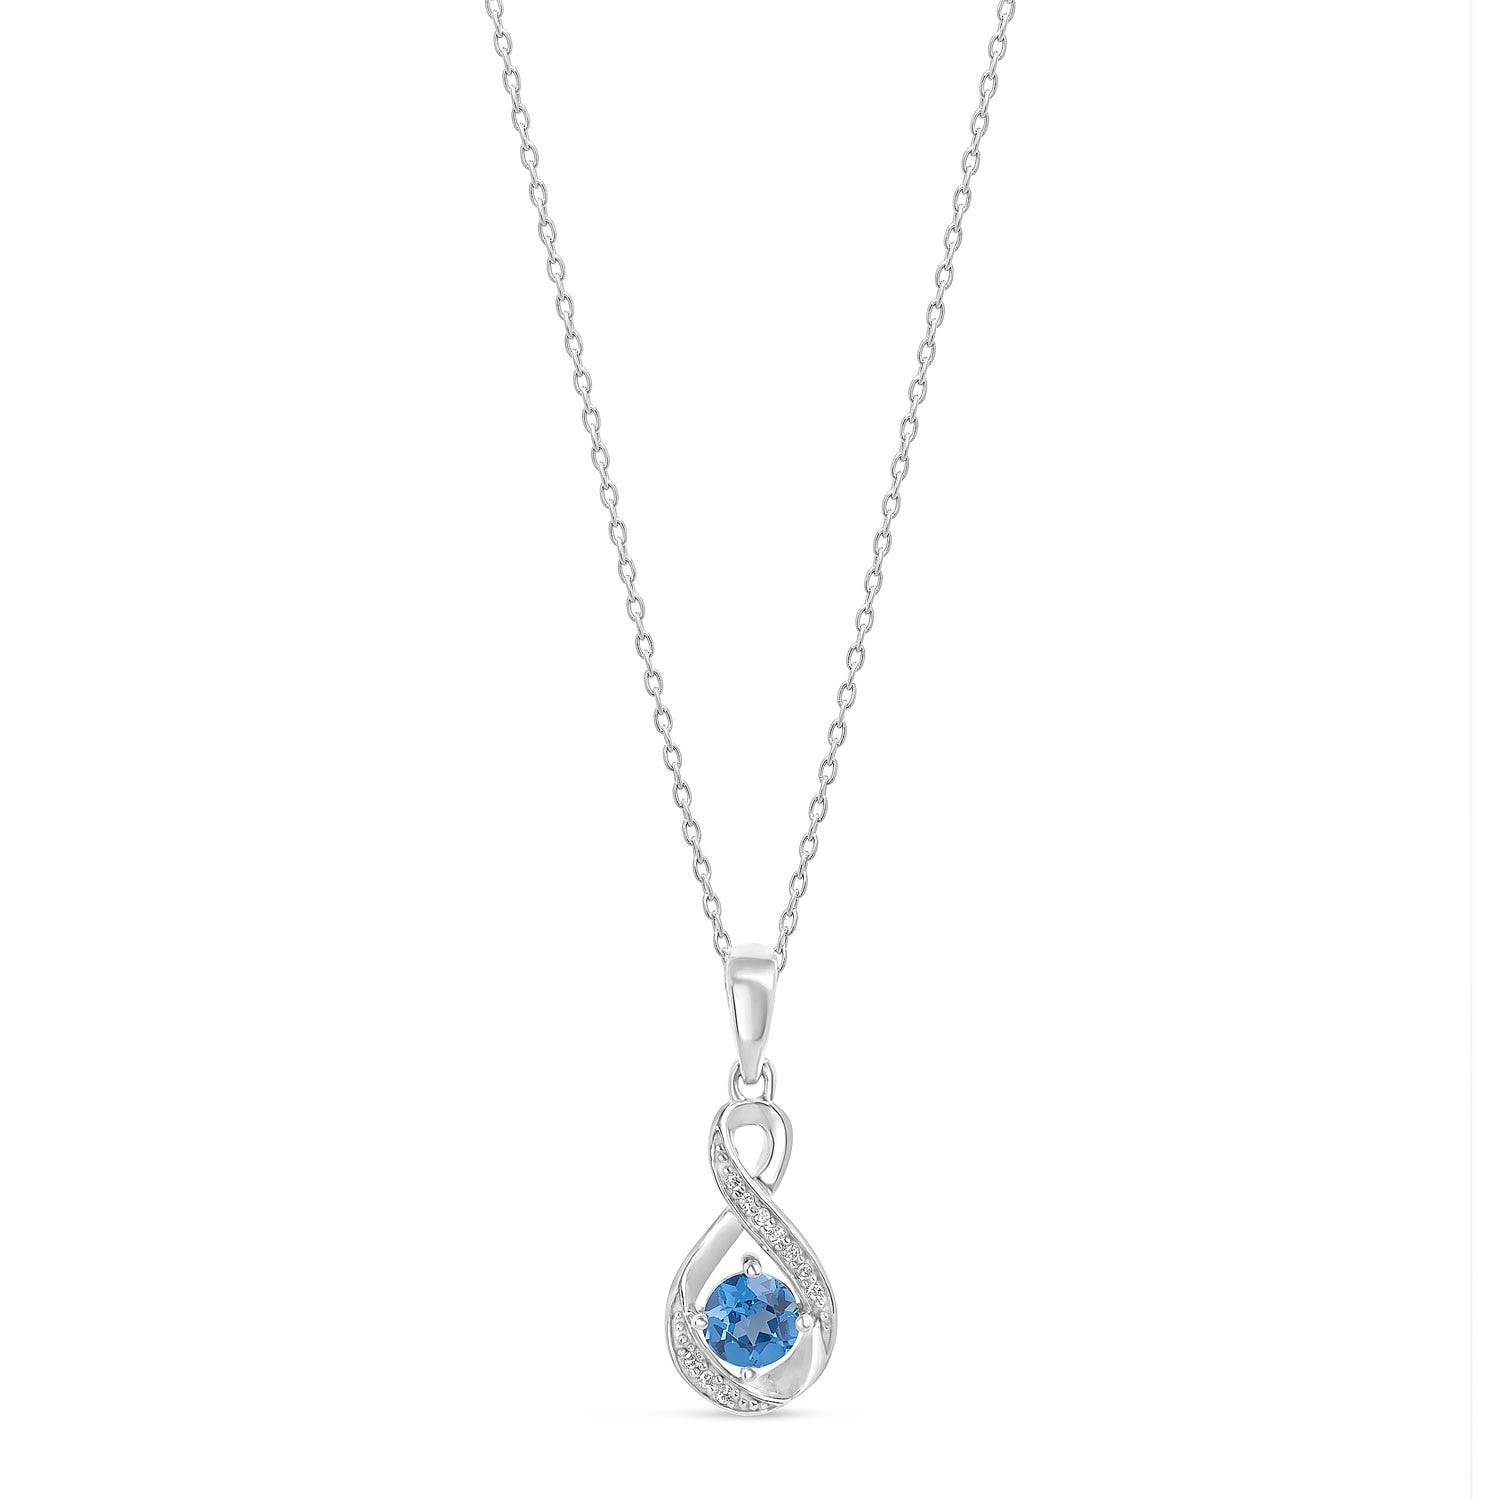 Sterling Silver and Cubic Zirconia December Birthstone Pendant